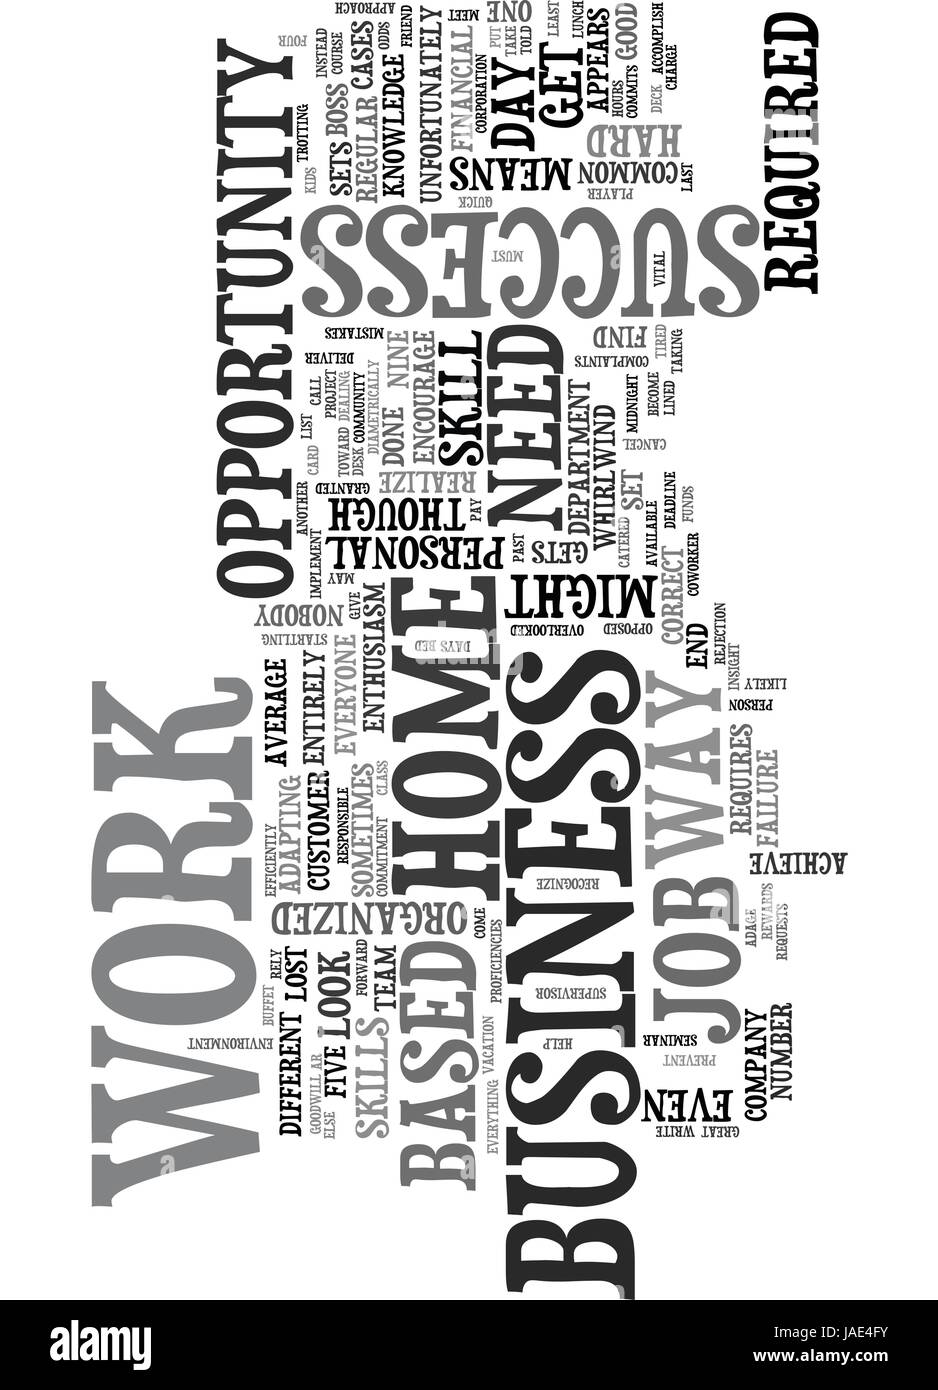 Work At A Home Based Business Opportunity Skill Set Text Word Cloud